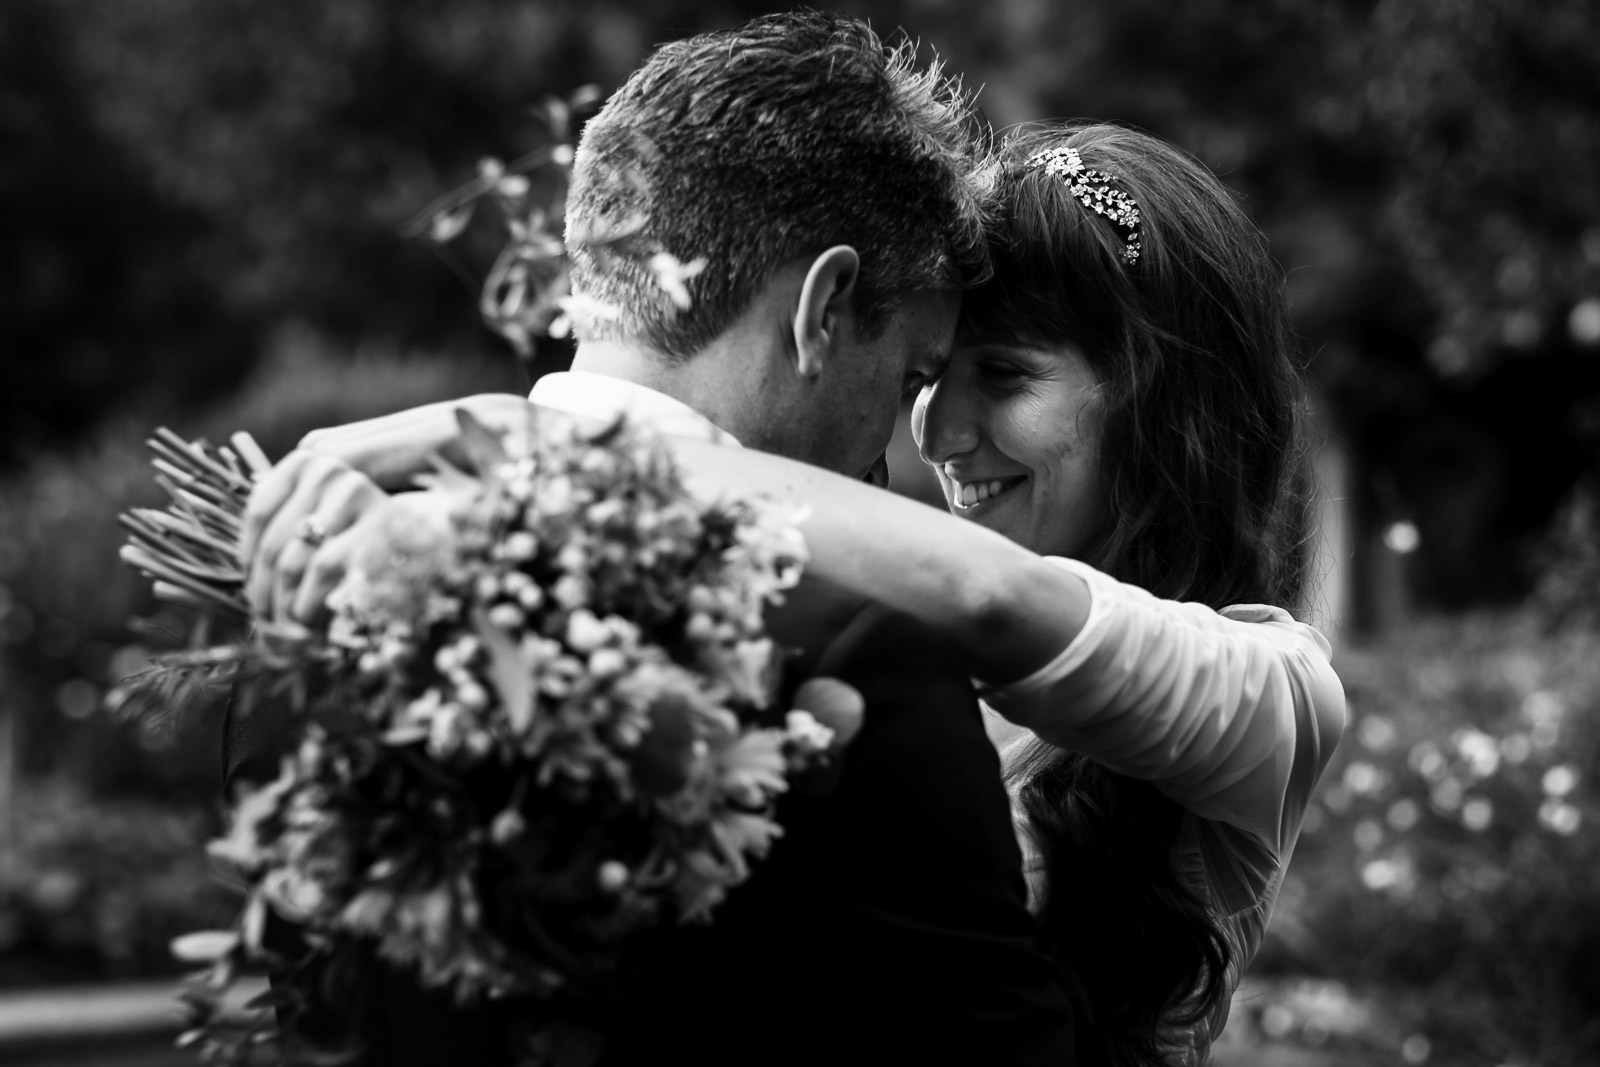 Wedding photographer in Brianza. Newly wed bride and groom couple portrait at wedding reception location